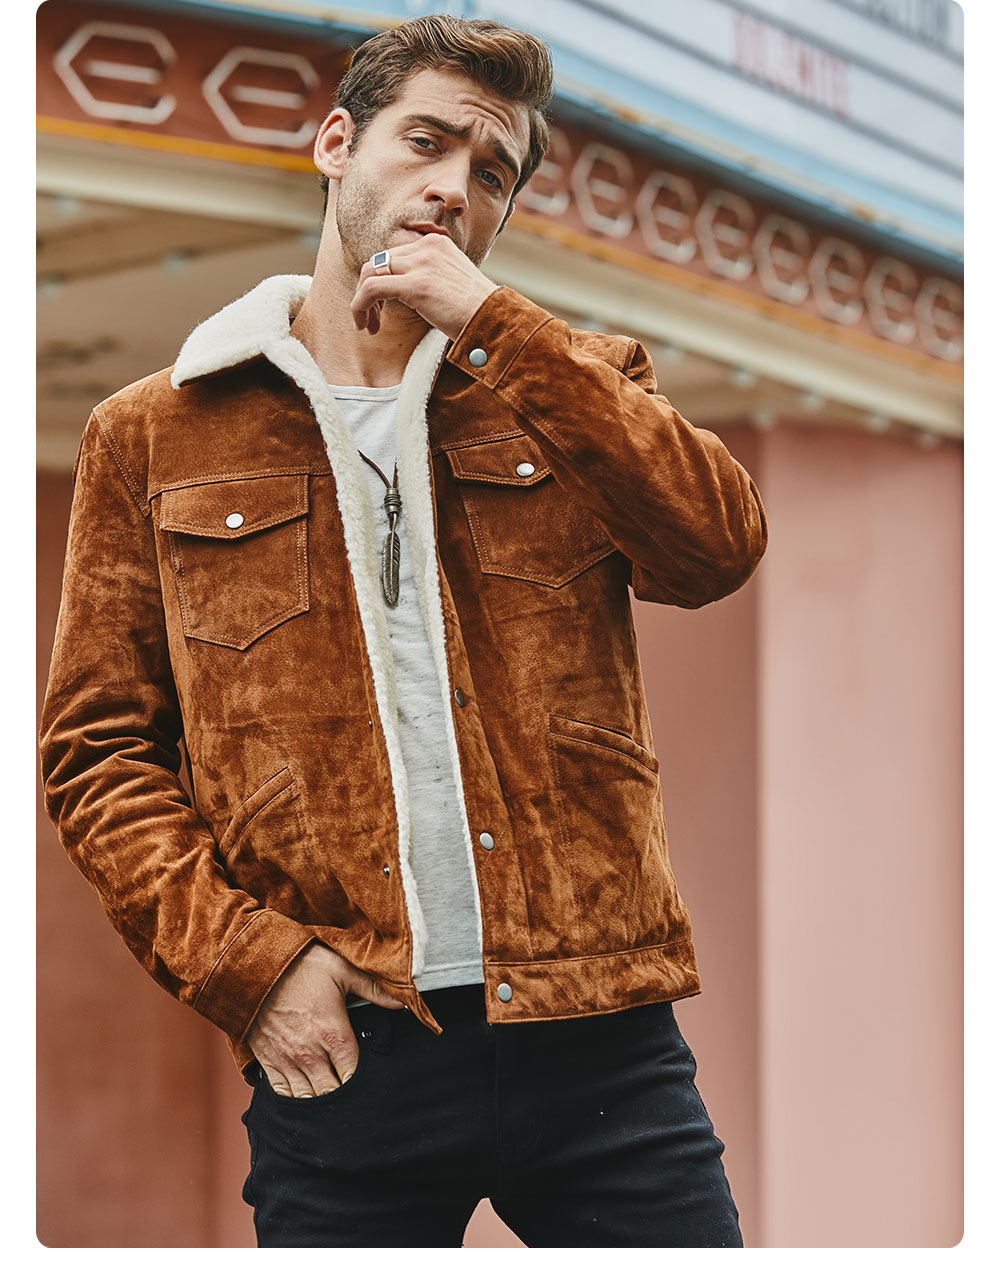 H99535e1064d844e18012be8792858e32Y FLAVOR New Men's Real Leather Jacket Genuine Leather With Faux Shearling Warm Coat Men